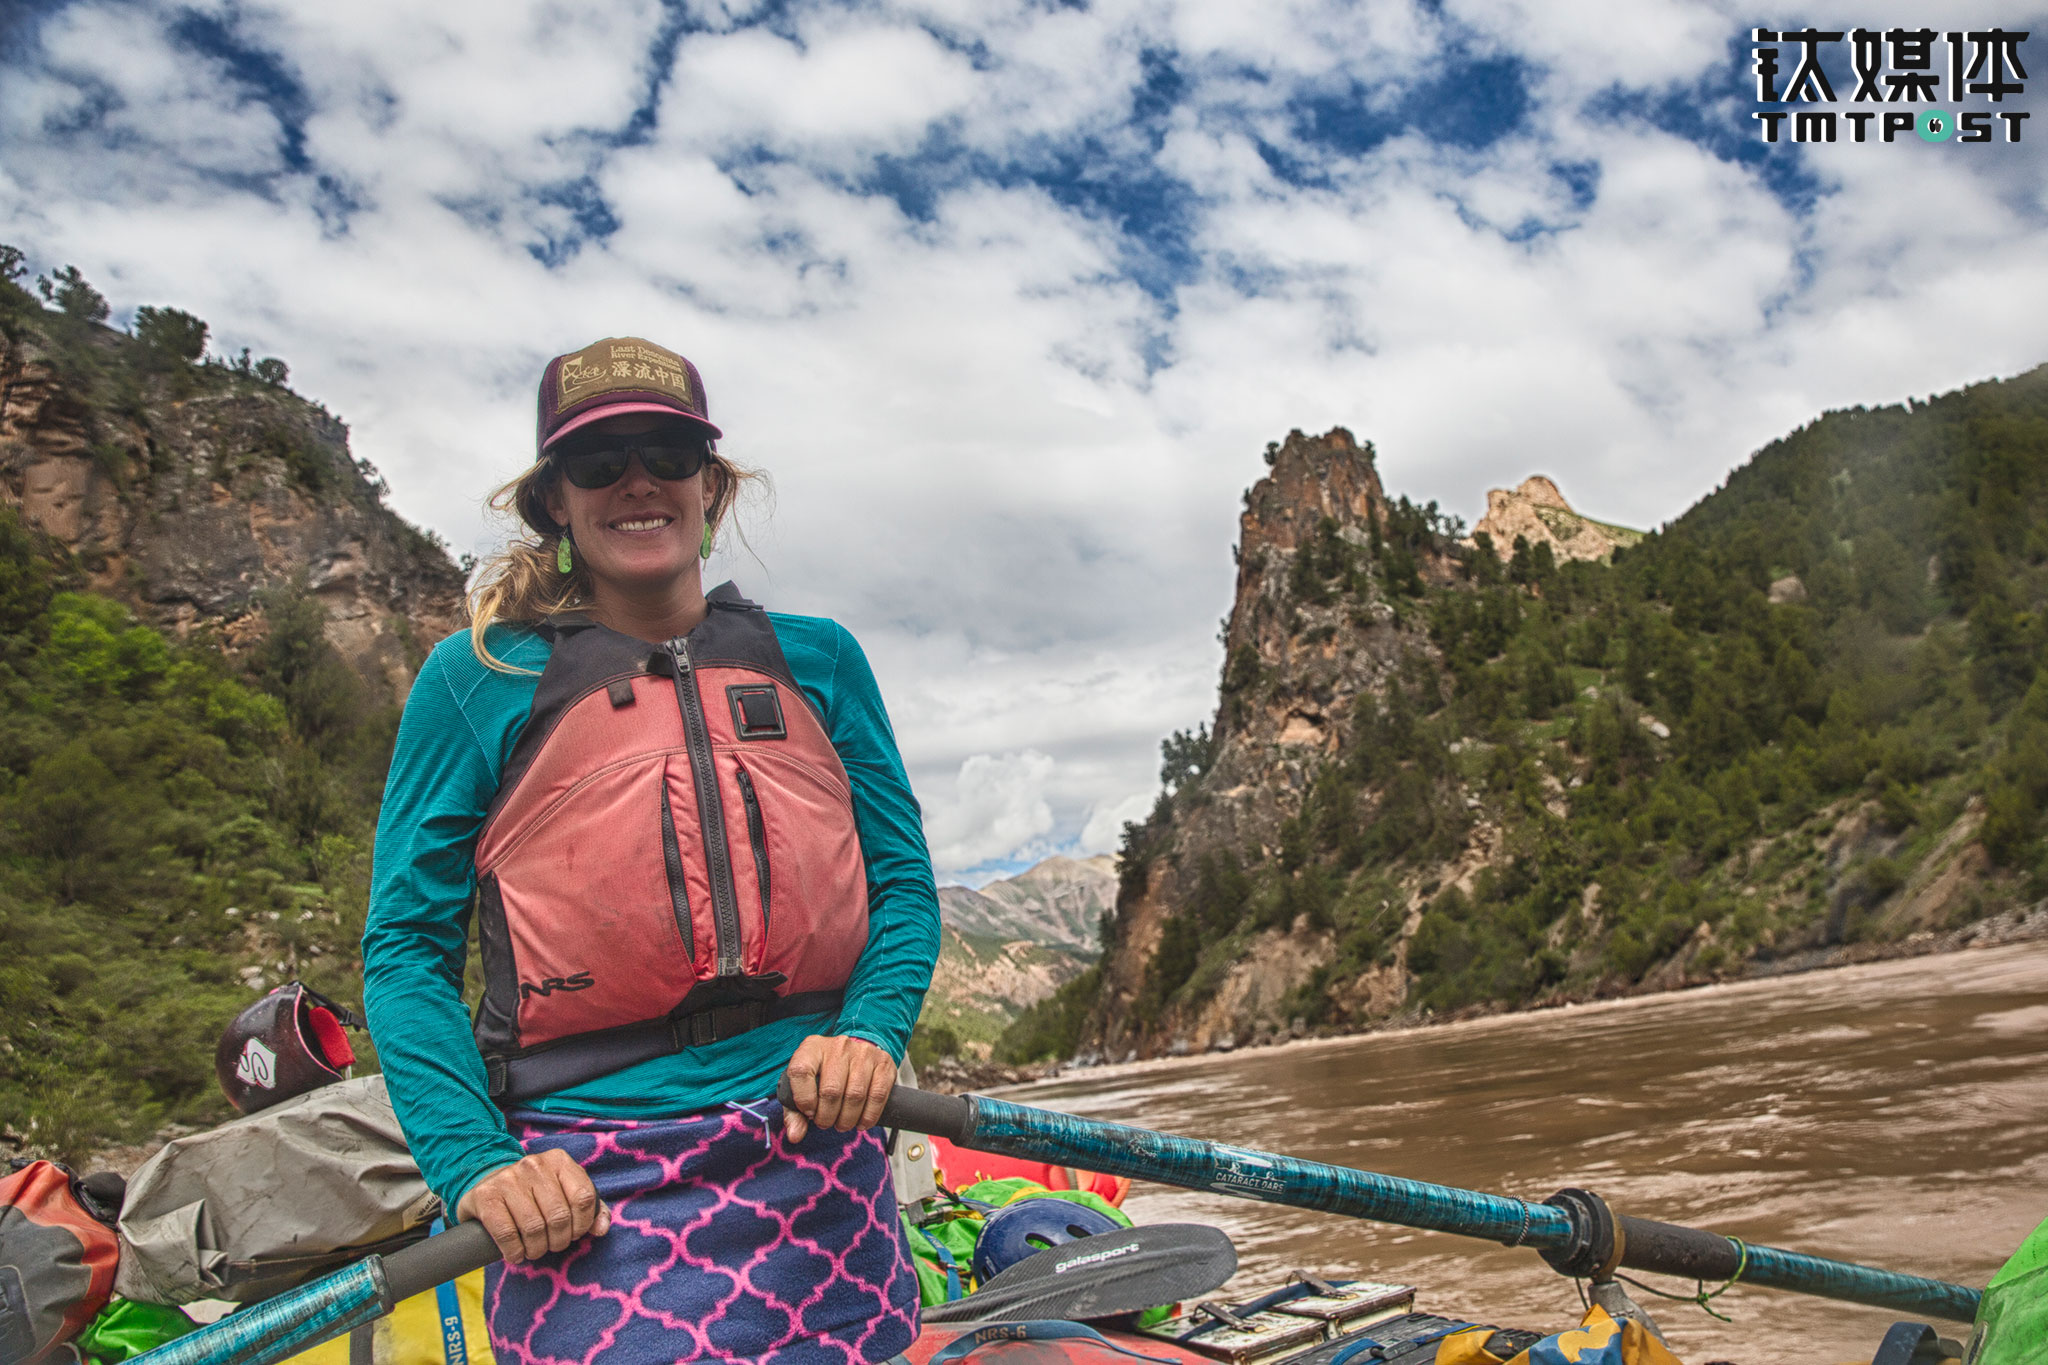 "During April to October each year, Kristin would be rafting on different rivers of the U.S. and China. ""I leave home every spring. I won't be able to see my family until eight months later,"" she said, telling TMTPost that her families didn't really understand her career choice at first. ""The turning point was the time I took my mom to raft on a river. This is not an ordinary job. My mom saw the power rivers give me. She saw that I am happy on the river and started to understand my choice of option."""